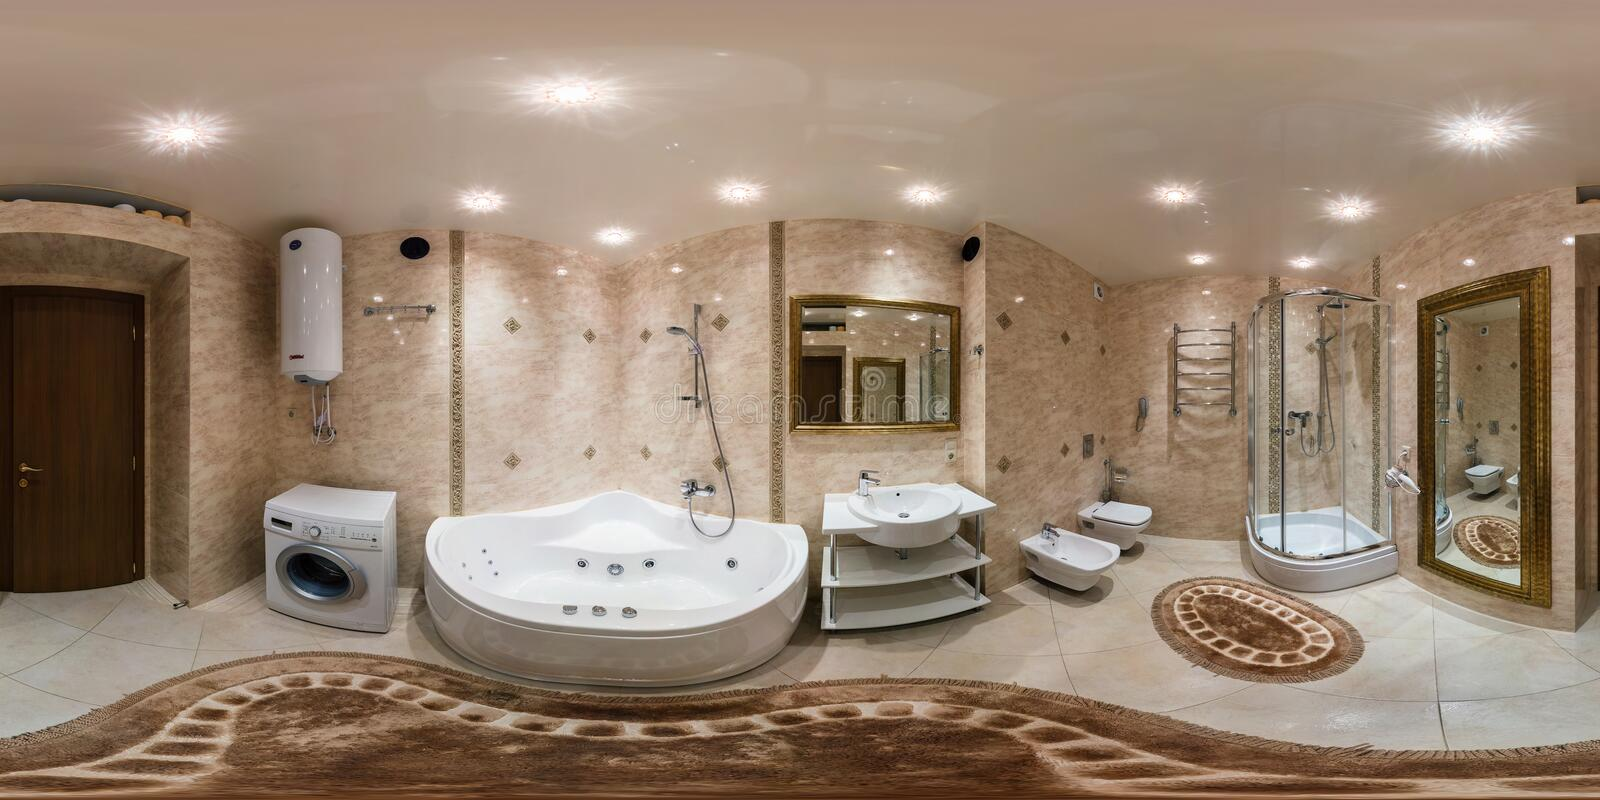 GRODNO, BELARUS - MARCH 1, 2014: Full spherical 360 degrees seamless panorama in equirectangular equidistant projection, panorama. In interior bathroom in royalty free stock photo